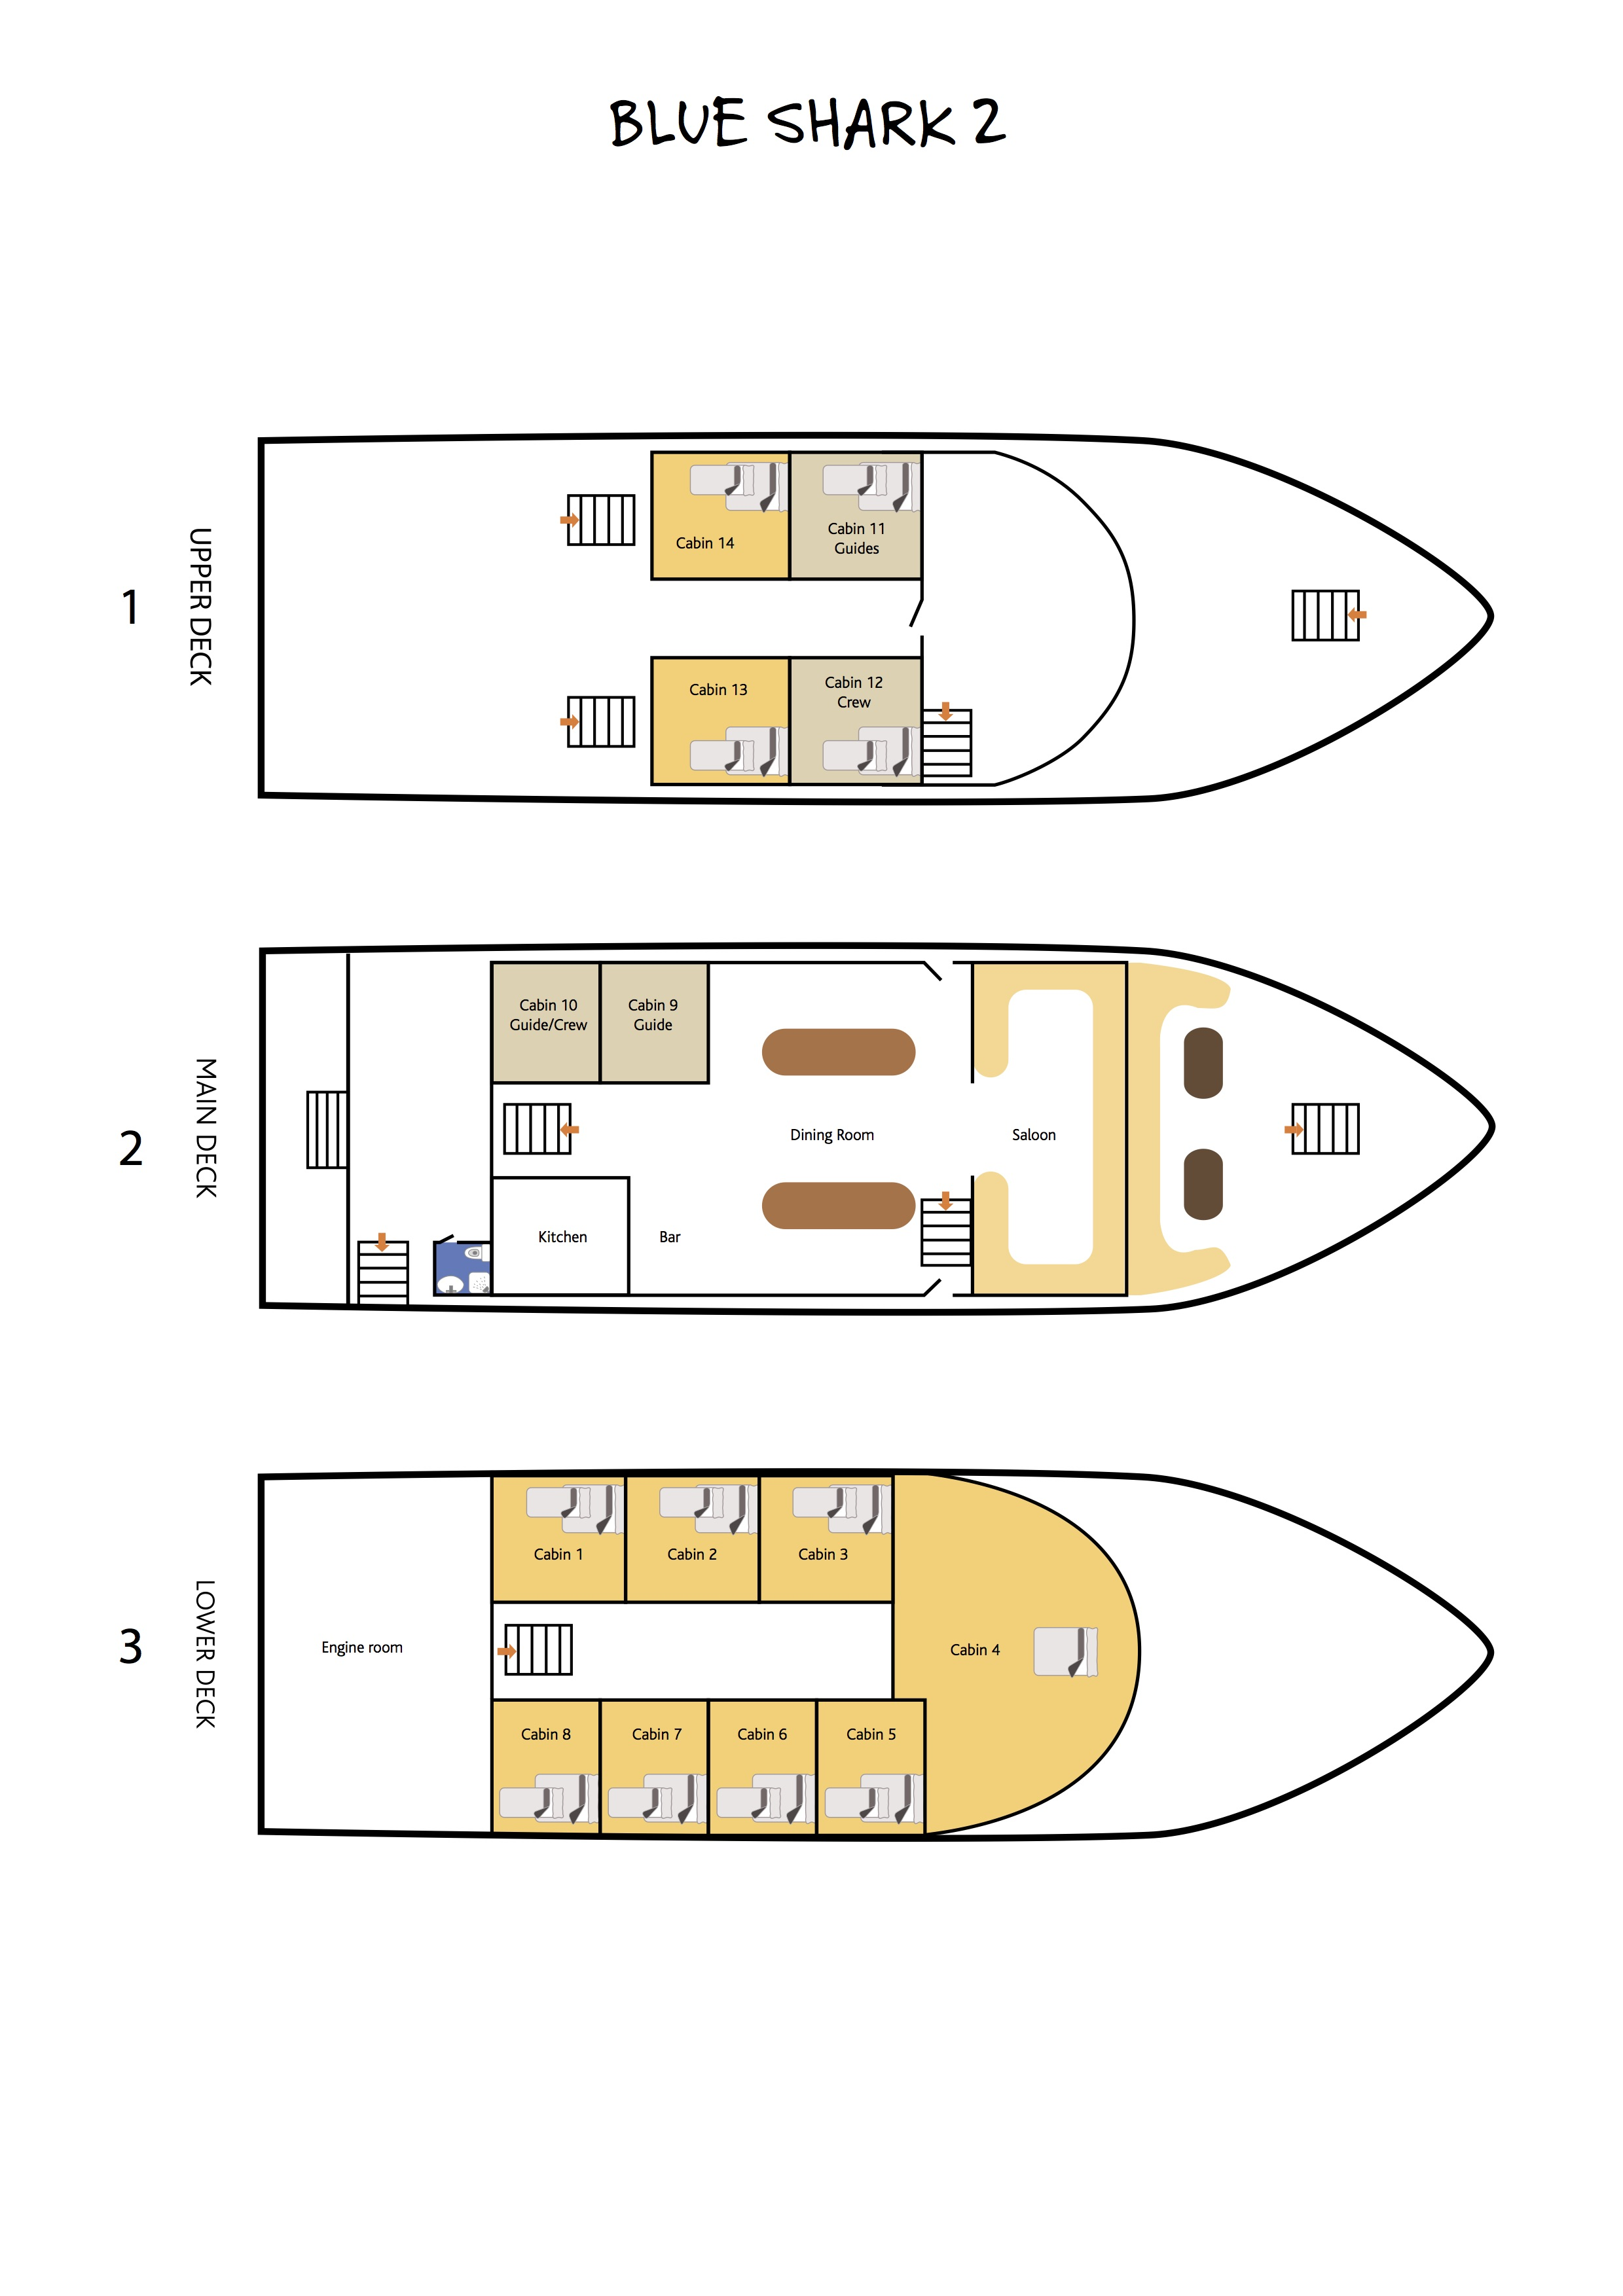 Deck Plan Blue Shark 2 floorplan